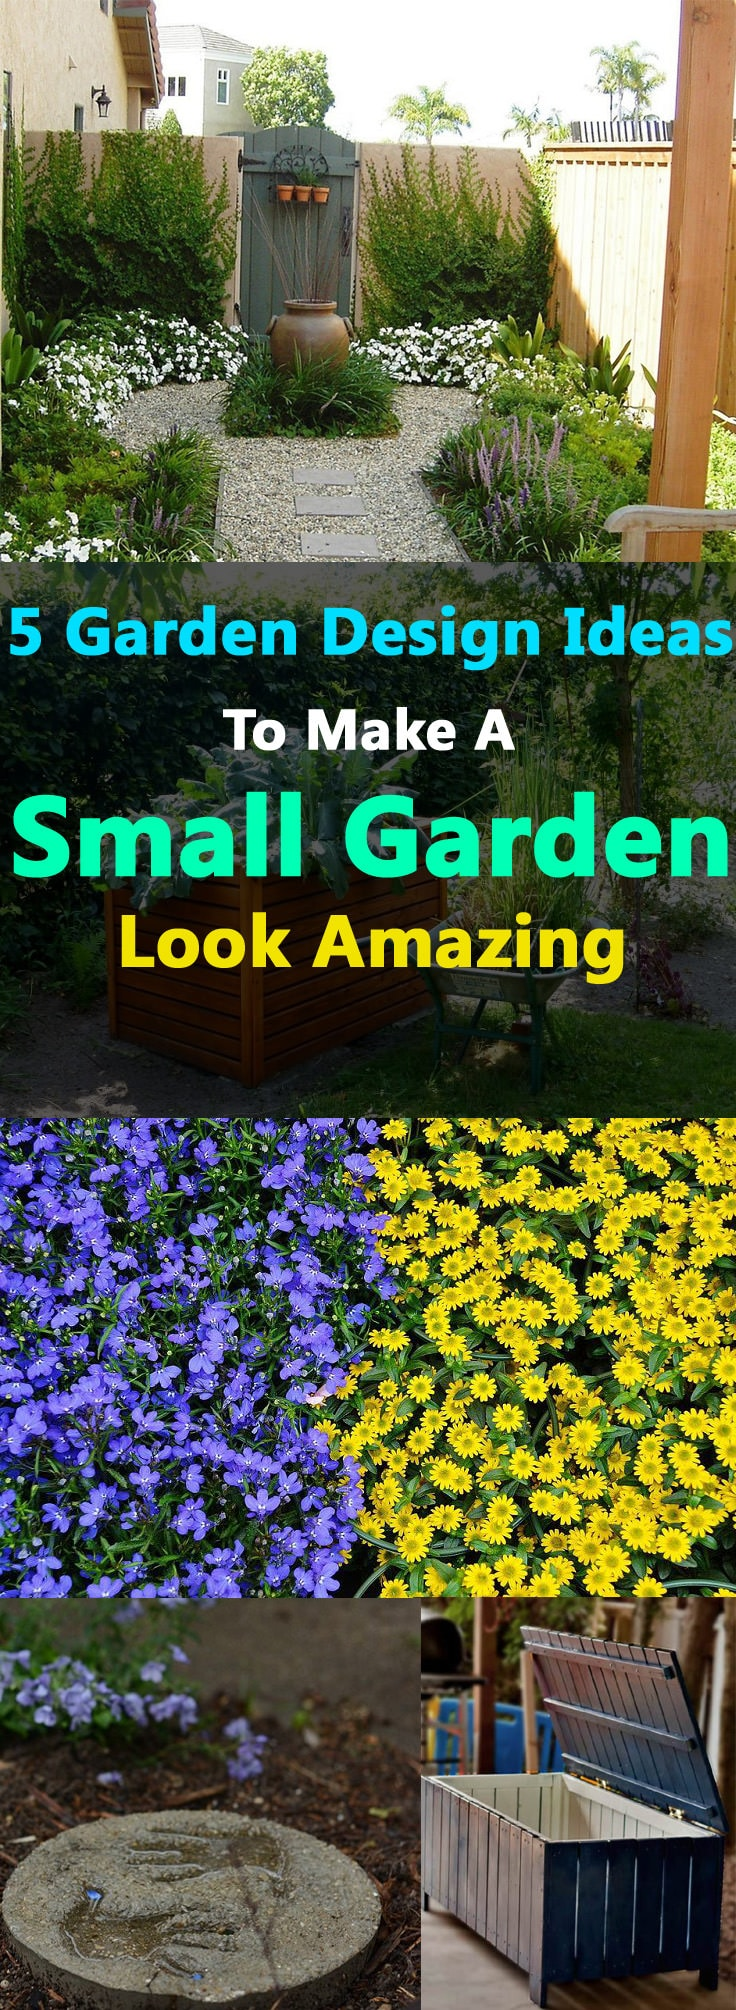 5 garden design ideas to make a small garden look amazing for Designing a garden space